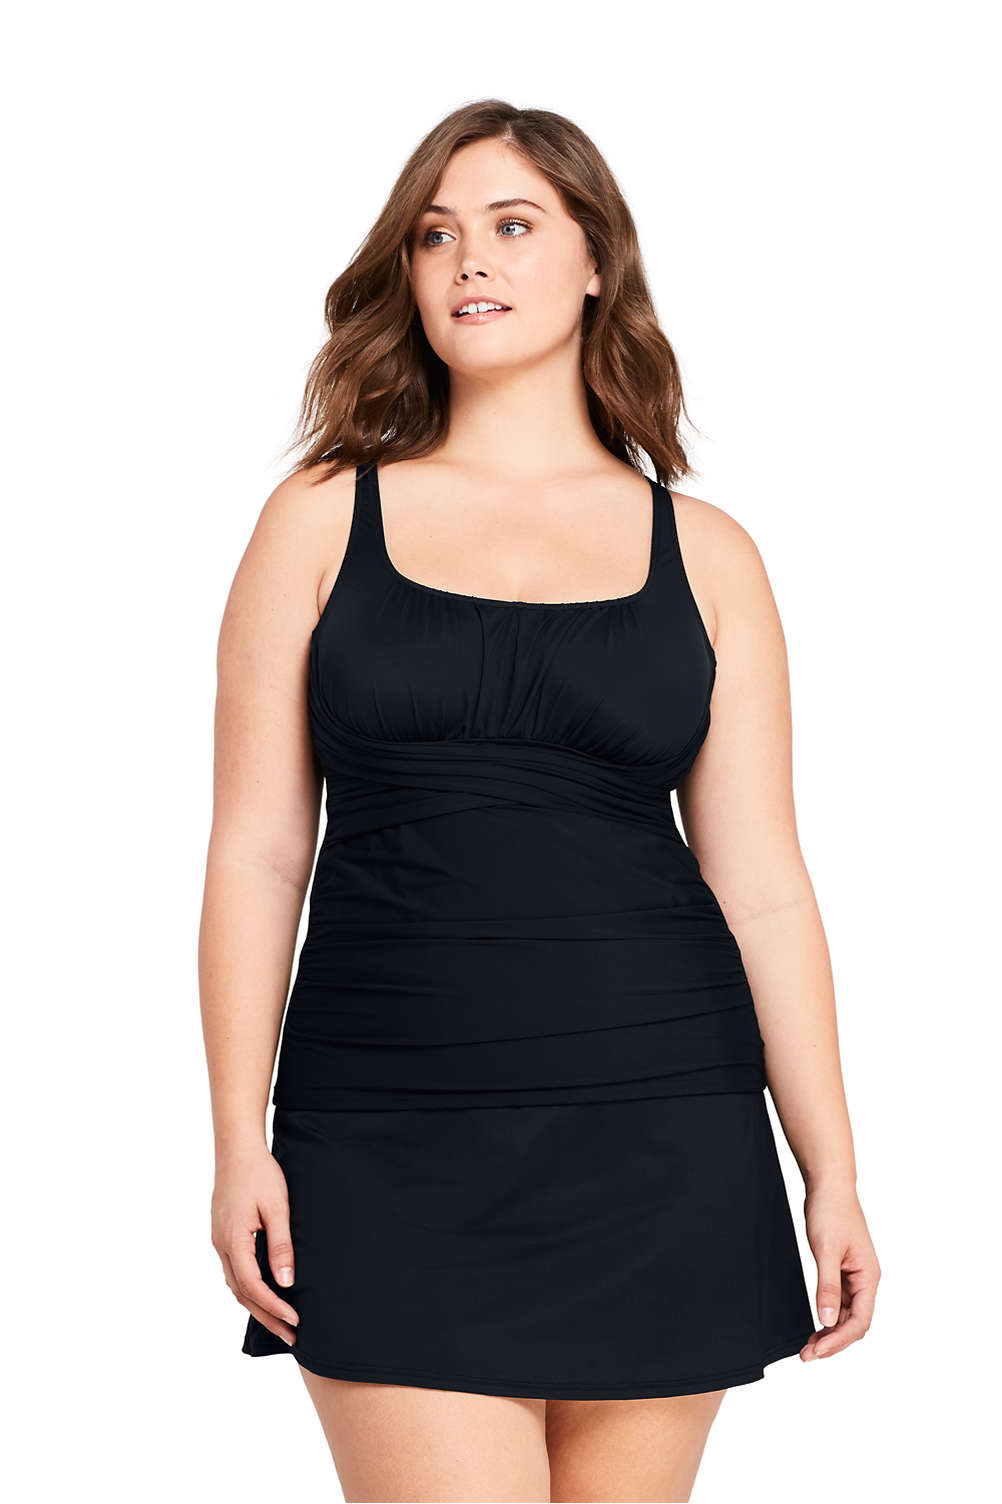 72abaa2d72c6b Women s Plus Size Slender Square Neck Underwire Tankini Top Swimsuit from  Lands  End